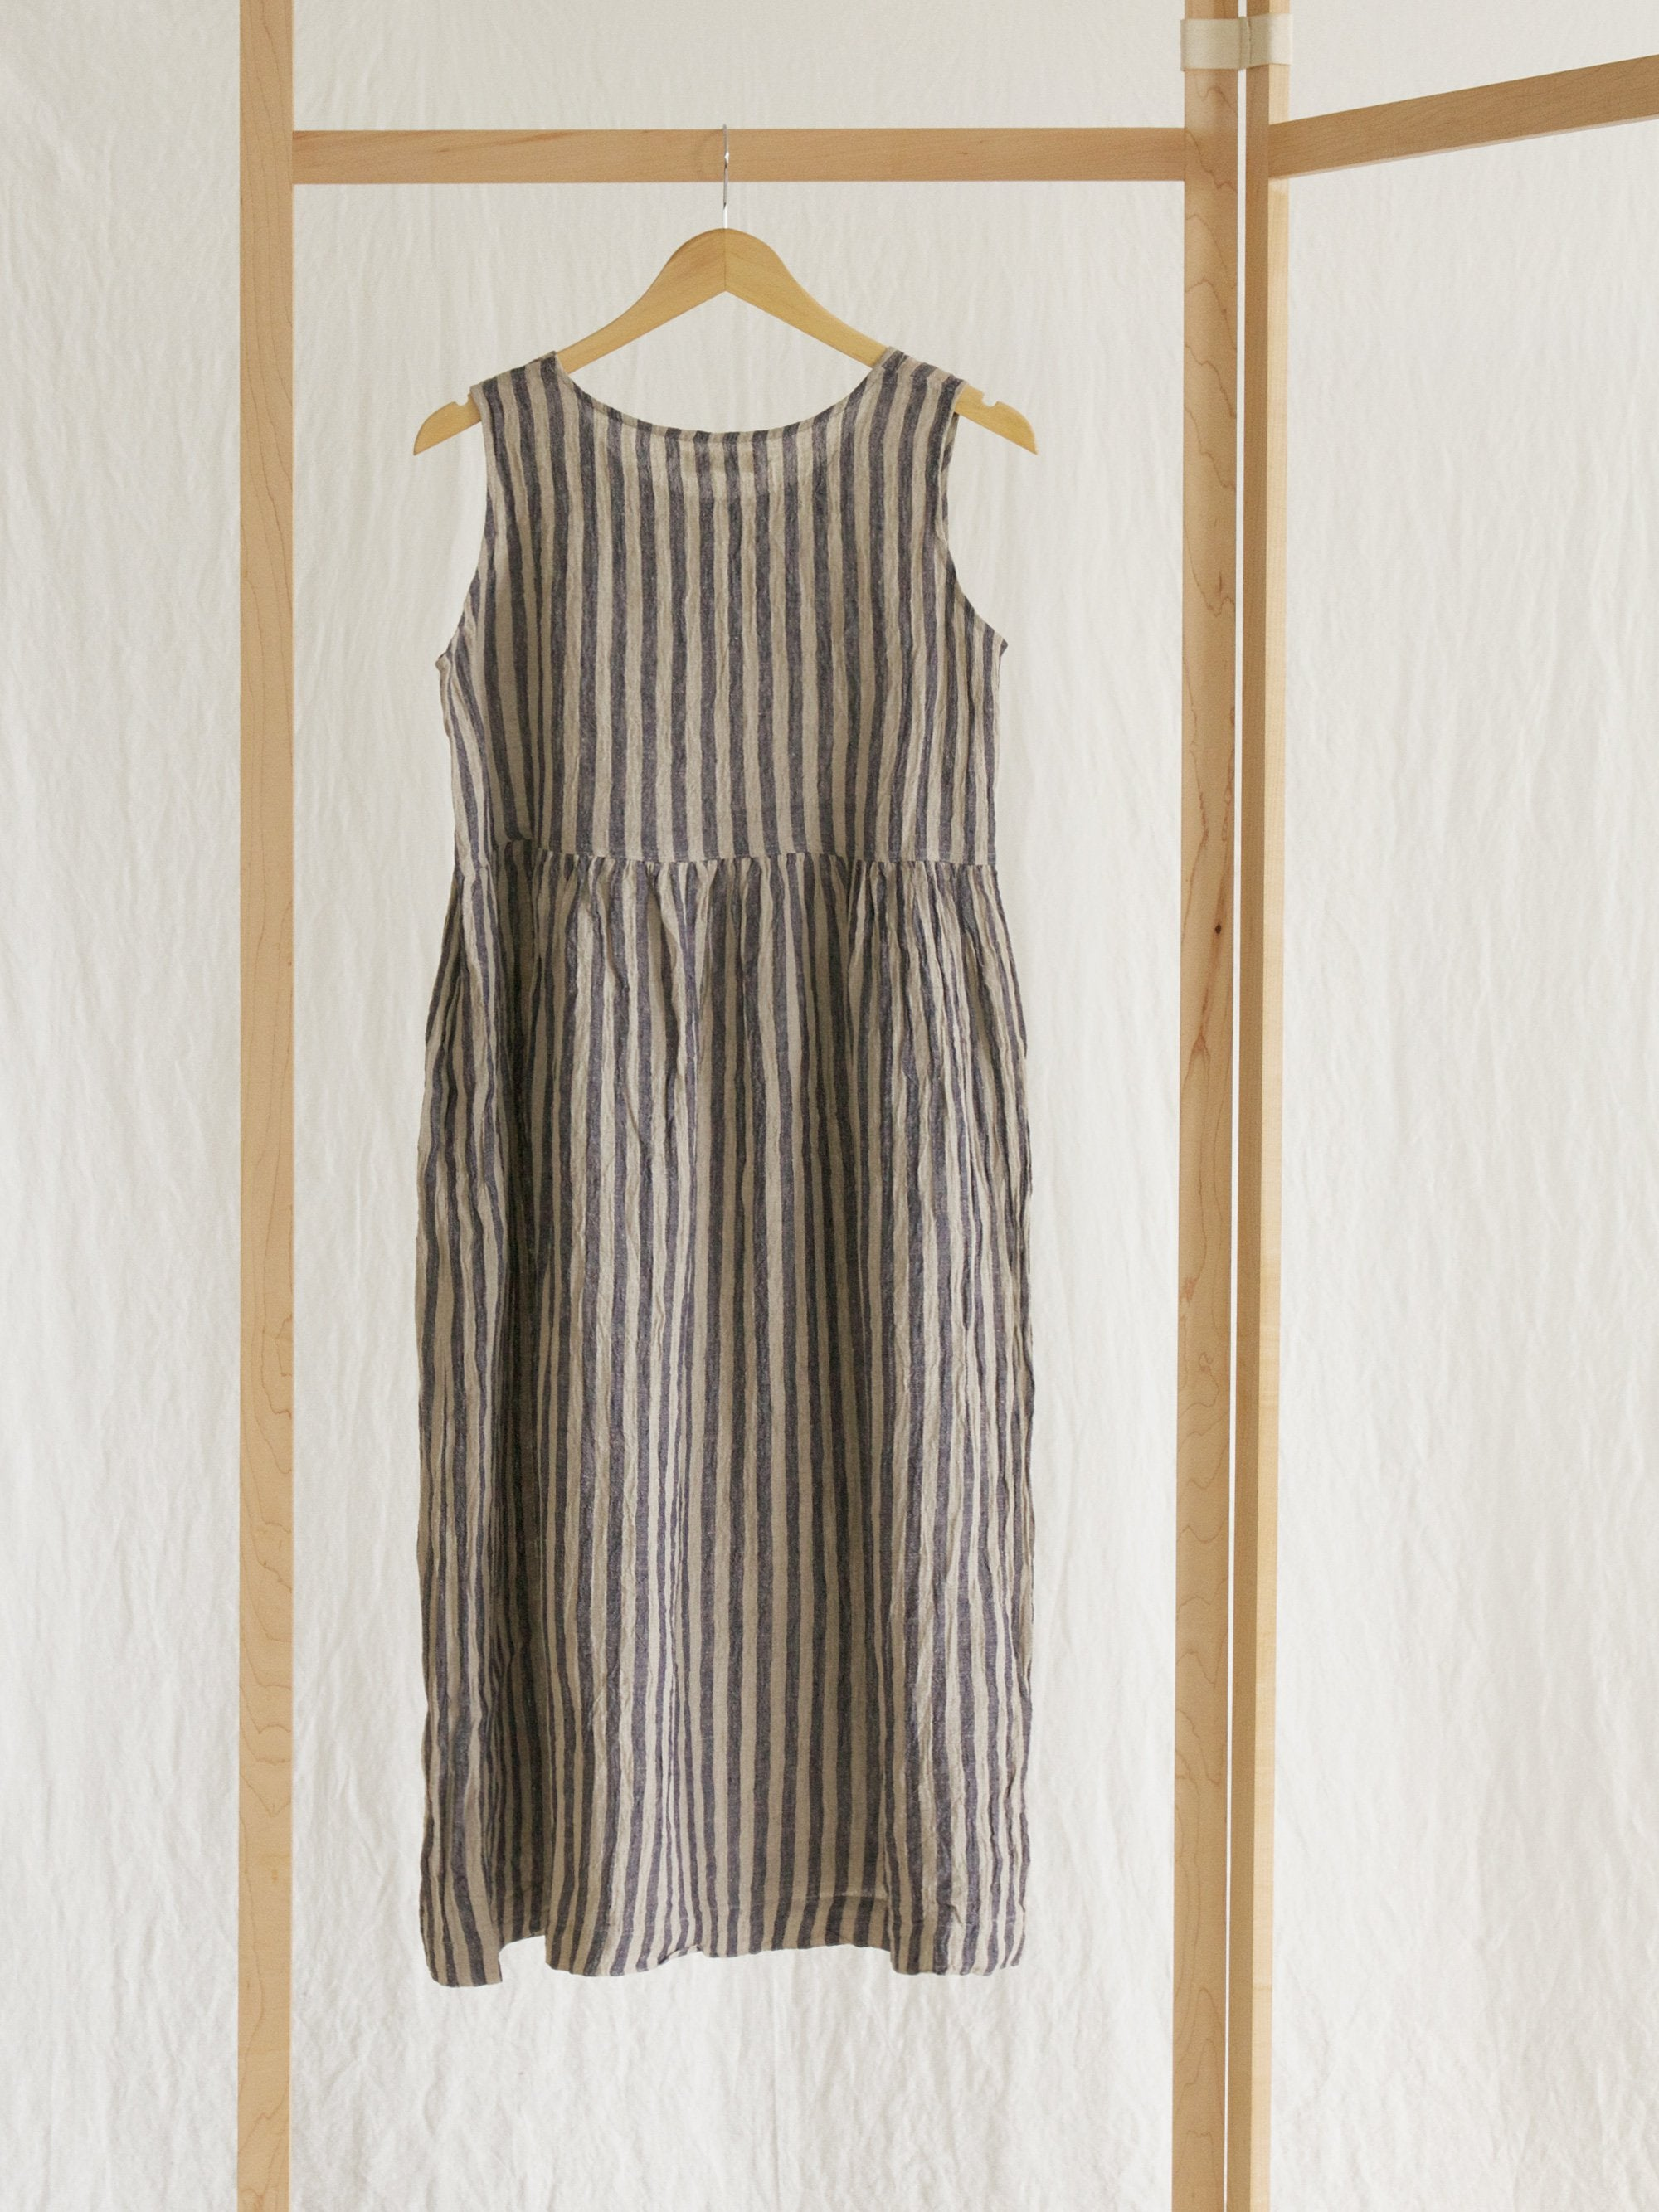 Namu Shop - Ichi Antiquites Sleeveless Linen Dress - Navy Stripe